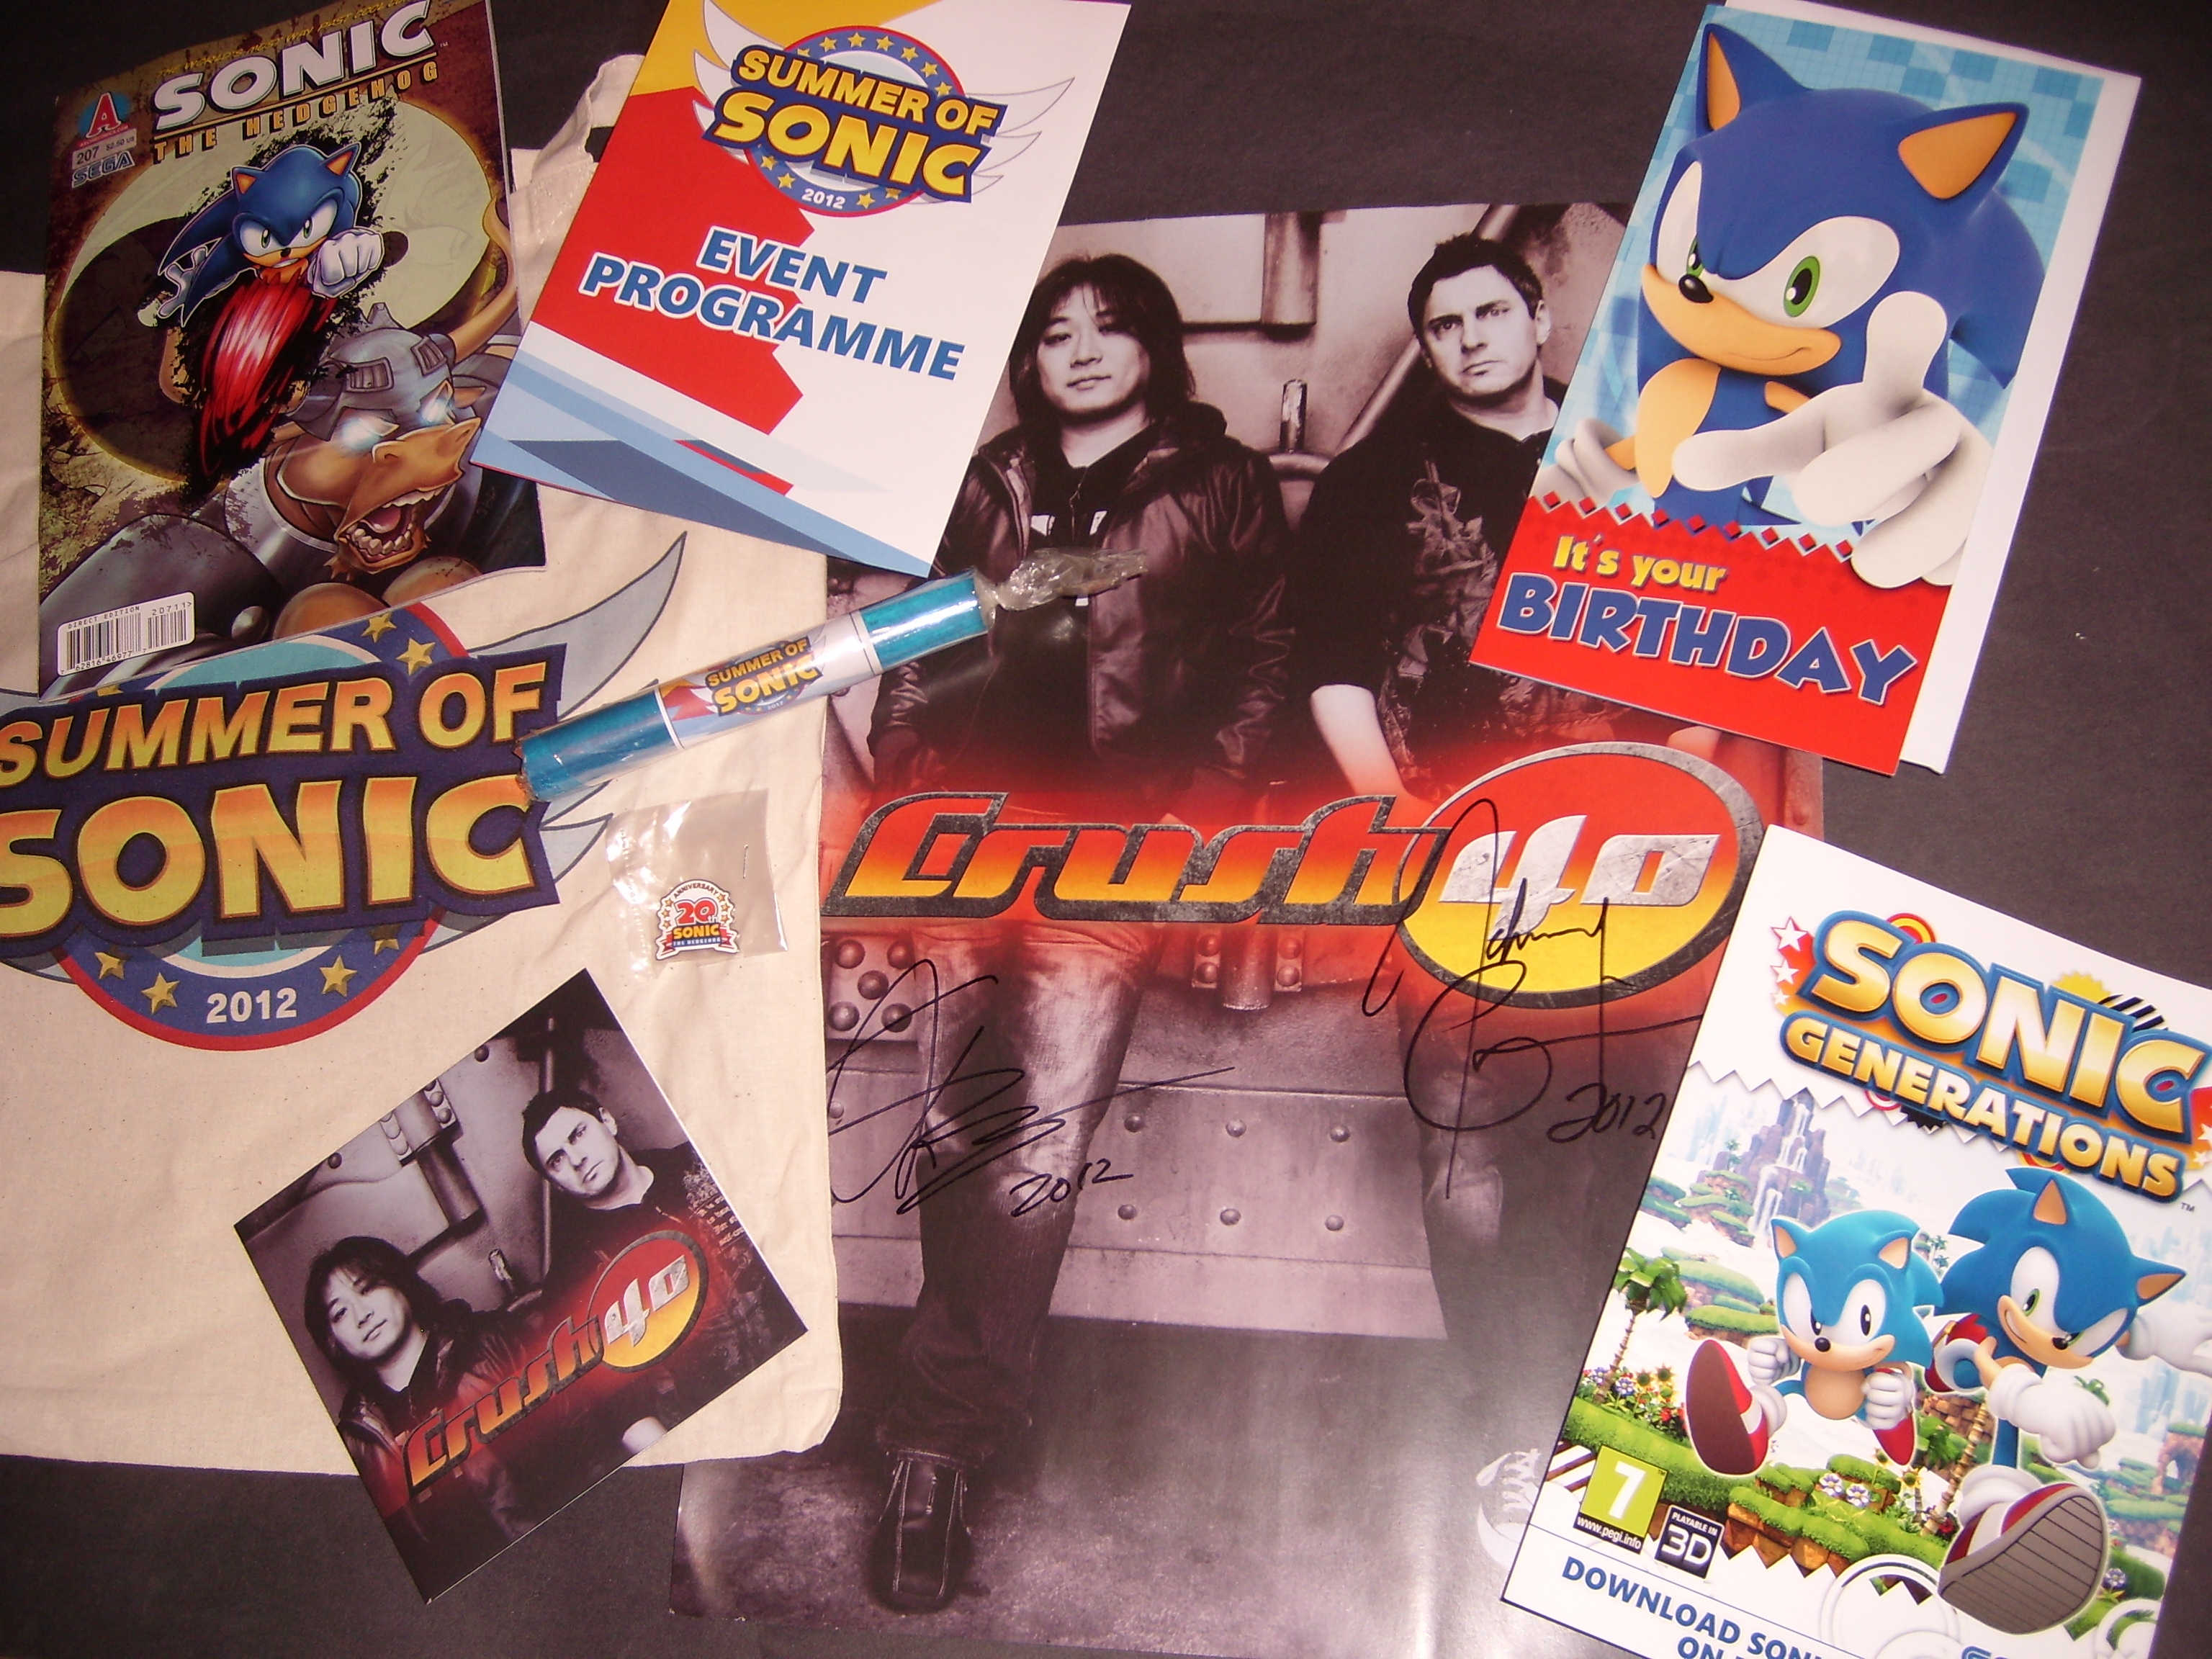 Competition: Win a Summer of Sonic Goodie Bag + Crush 40 Signed Merchandise!